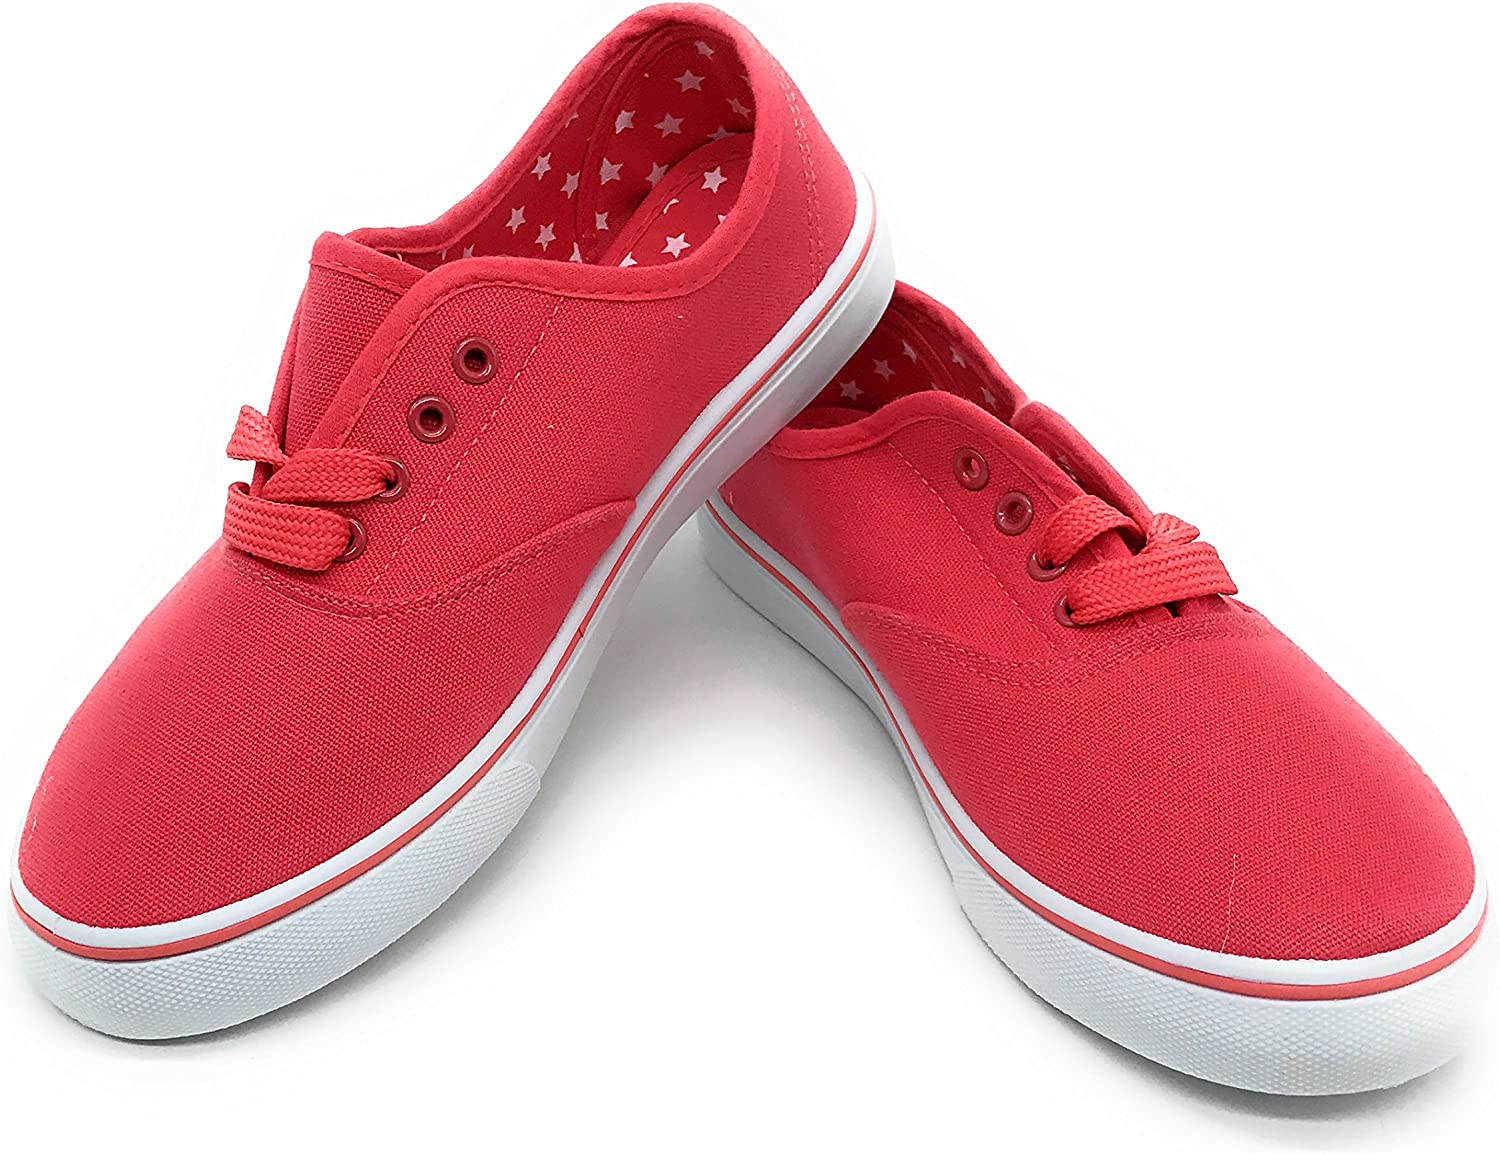 bluee Berry EASY21 Women Canvas Lace Up shoes Fashion Casual Comfort Sneakers